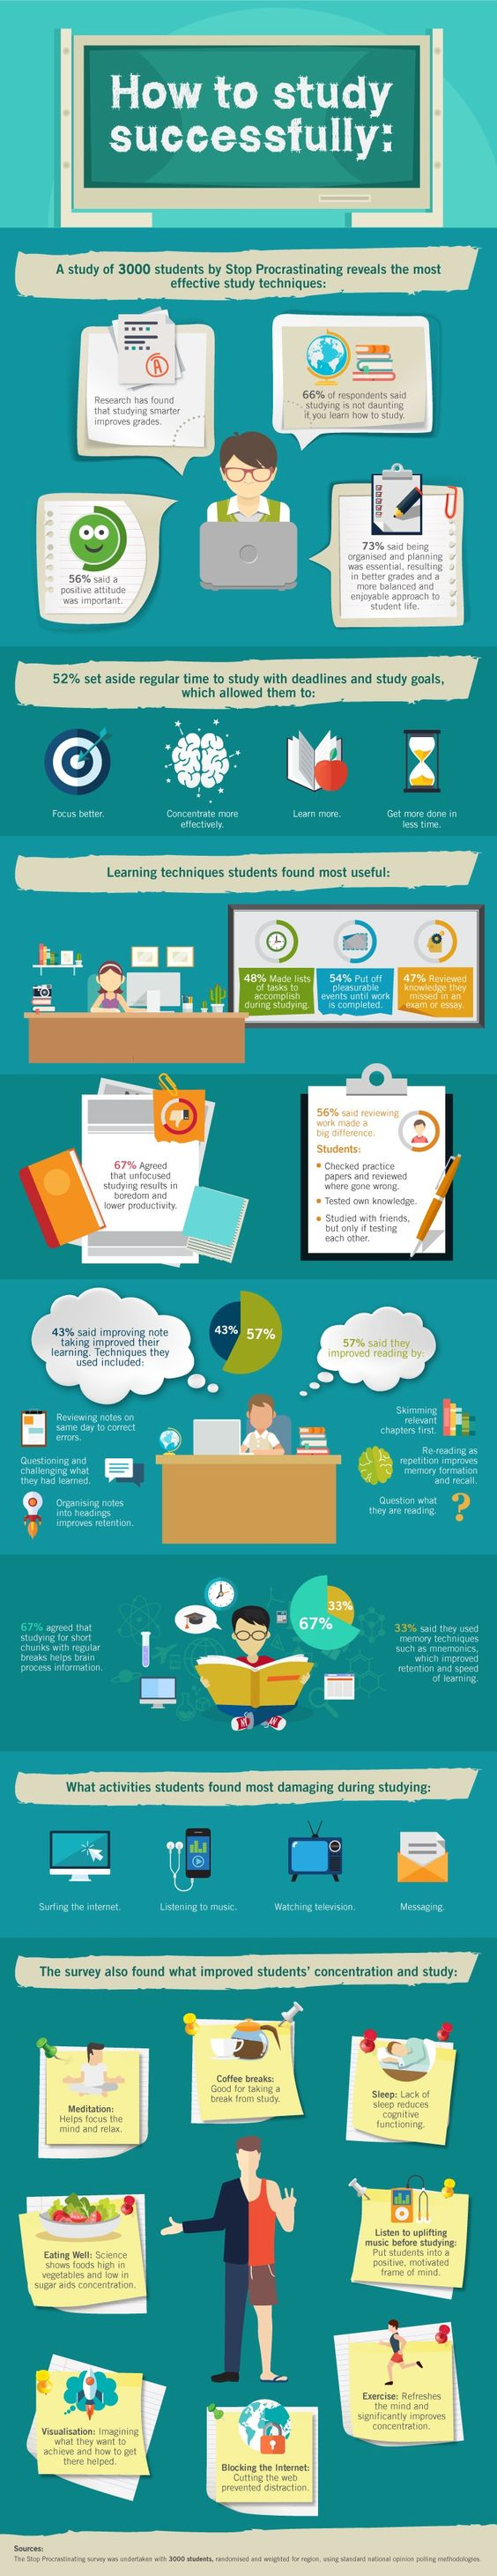 #Study #Infographic   How to Study Successfully   Shared with me through a Udemy class I'm taking on Project Management. I love getting information like this, it just reinforces what I already know about #learning!!